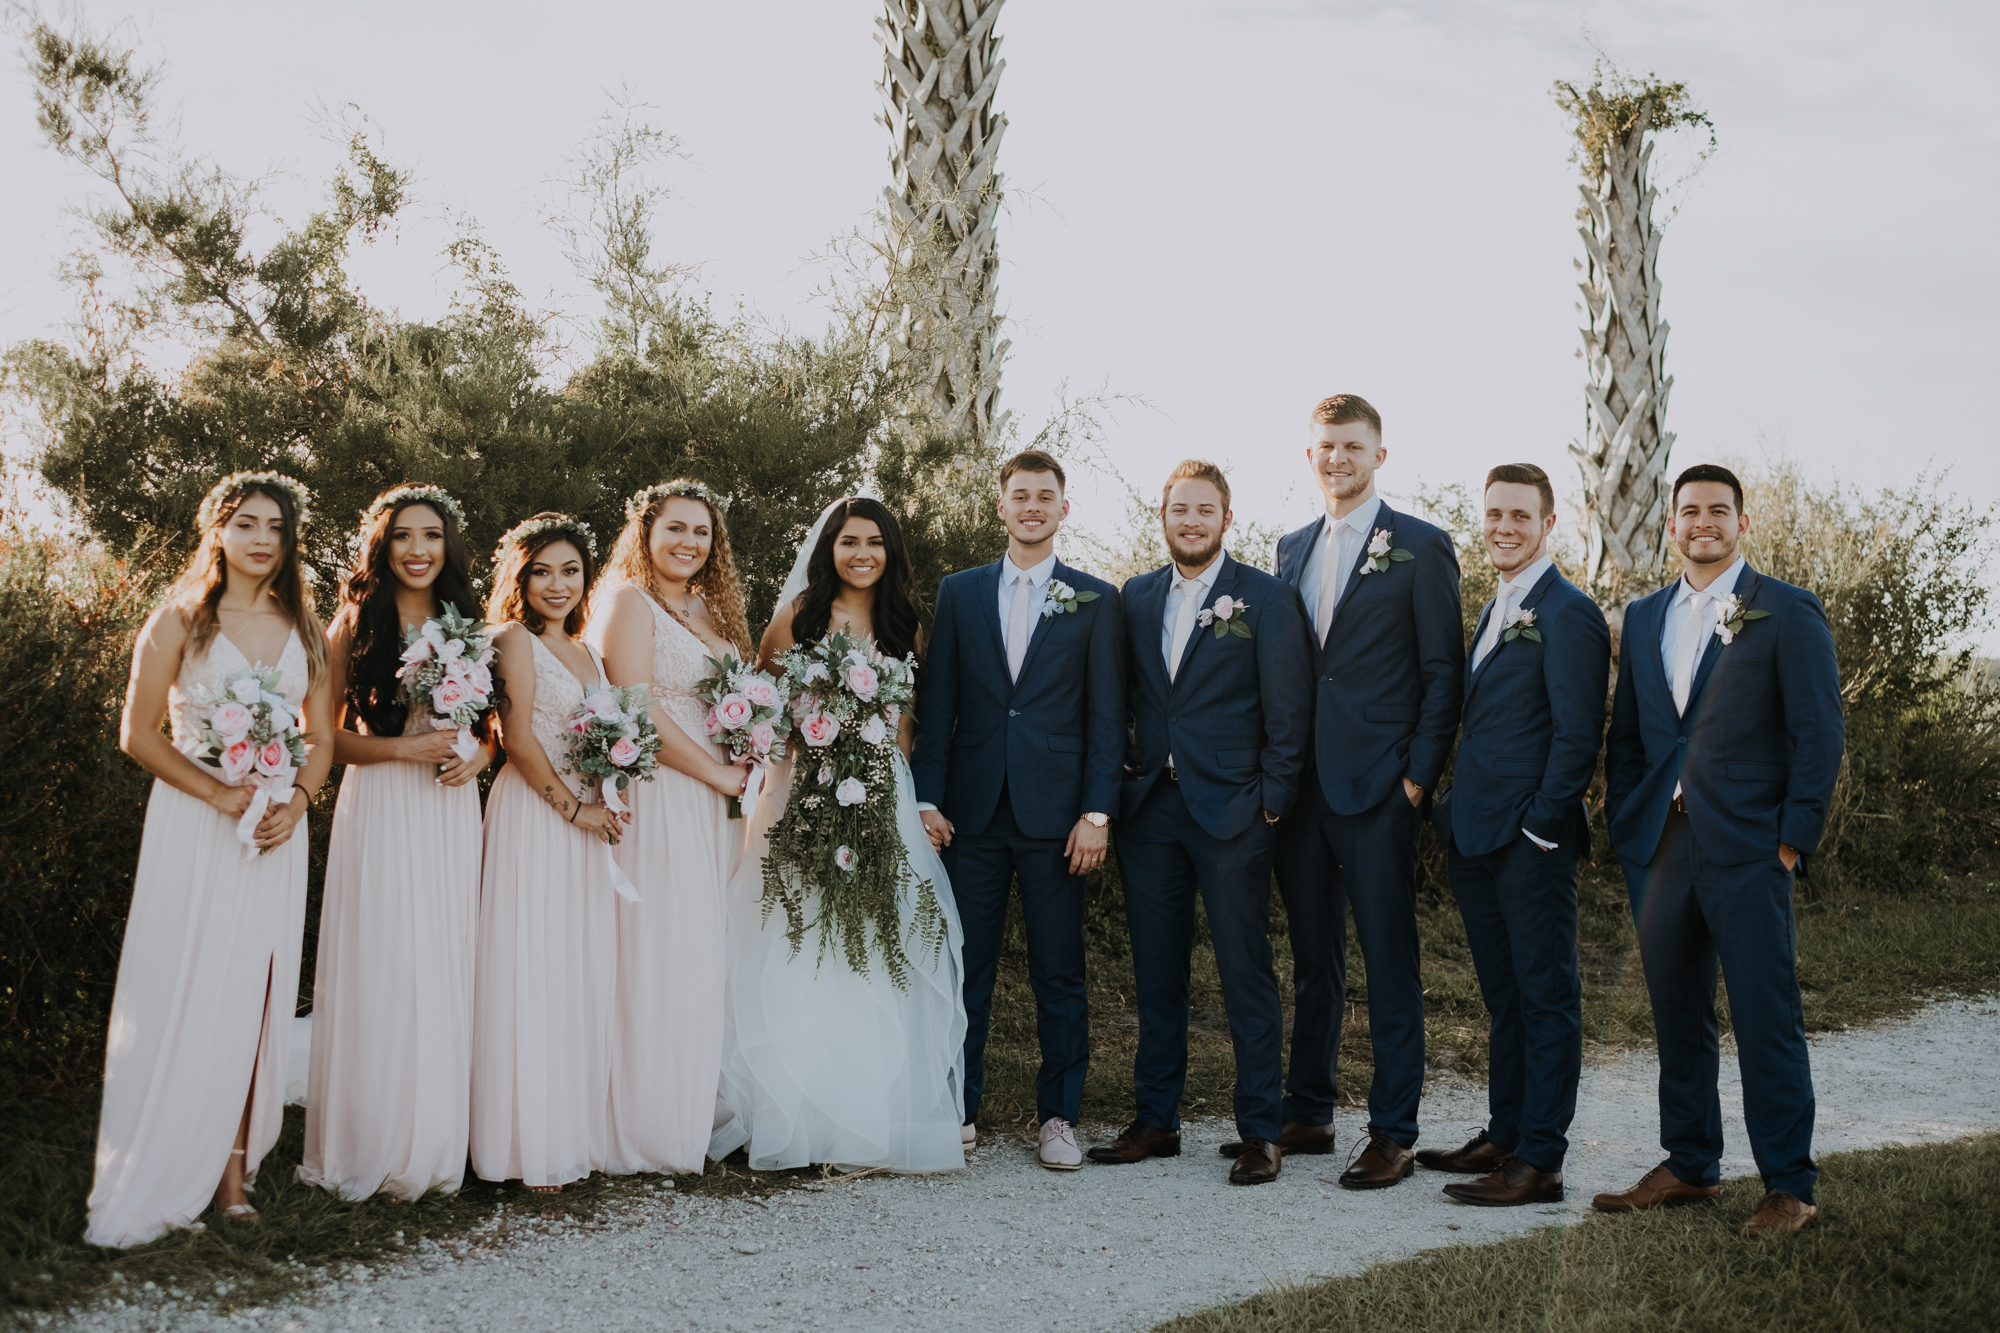 boho bridal party | bridal party portraits | bridesmaid portraits | groomsmen portraits | outdoor Florida wedding | sarasota wedding